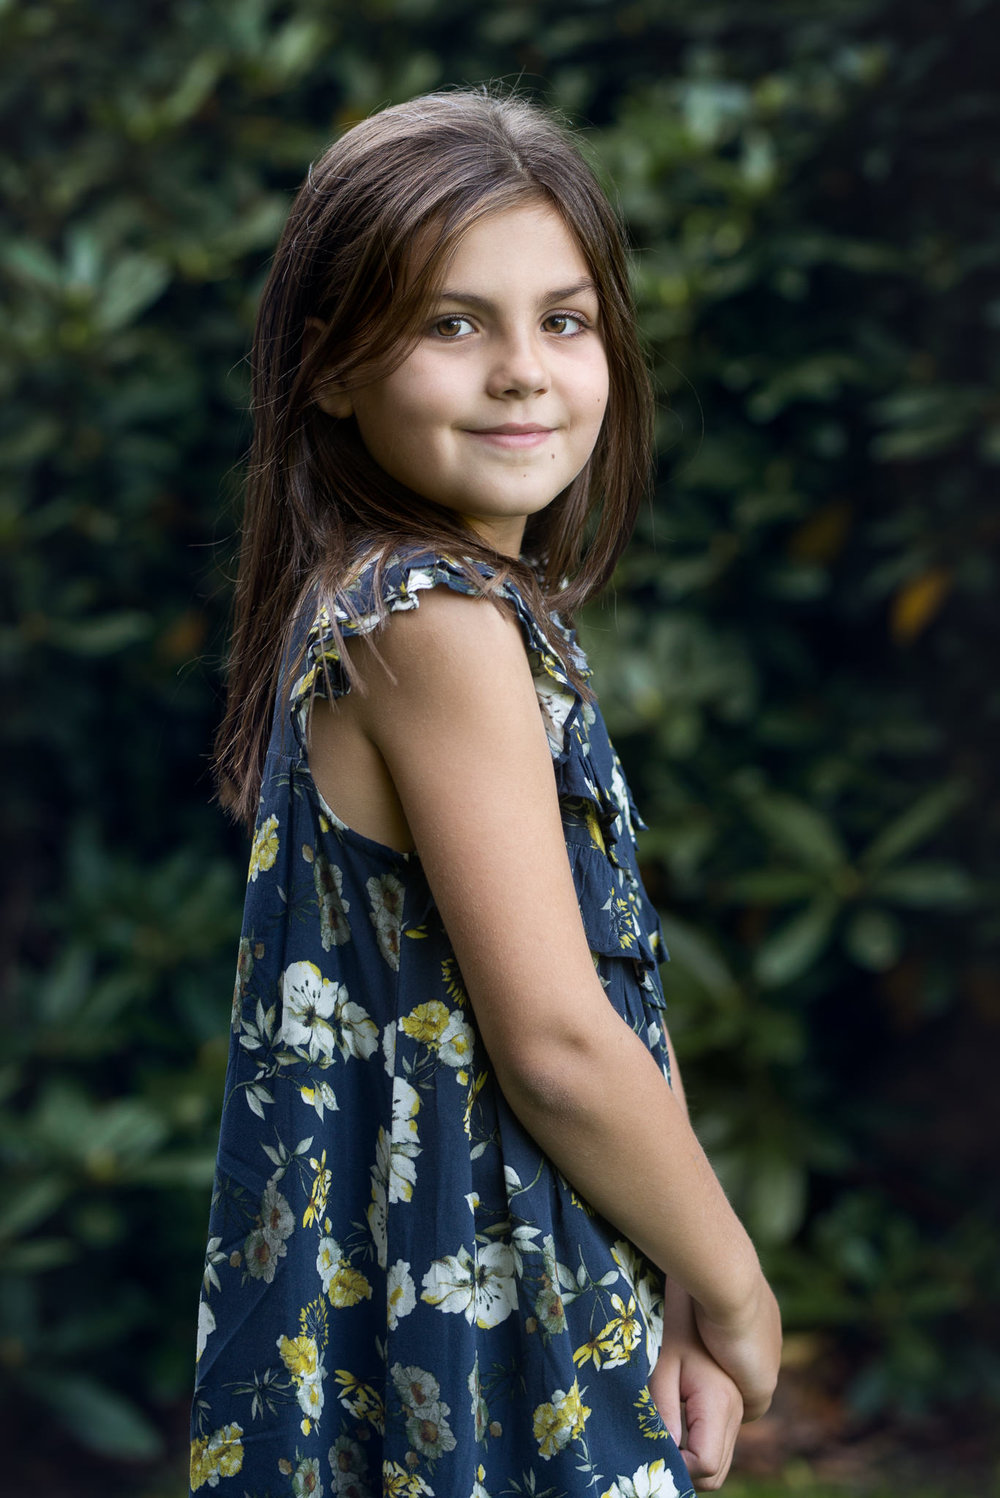 Girl stood against greenery | Children's Photography